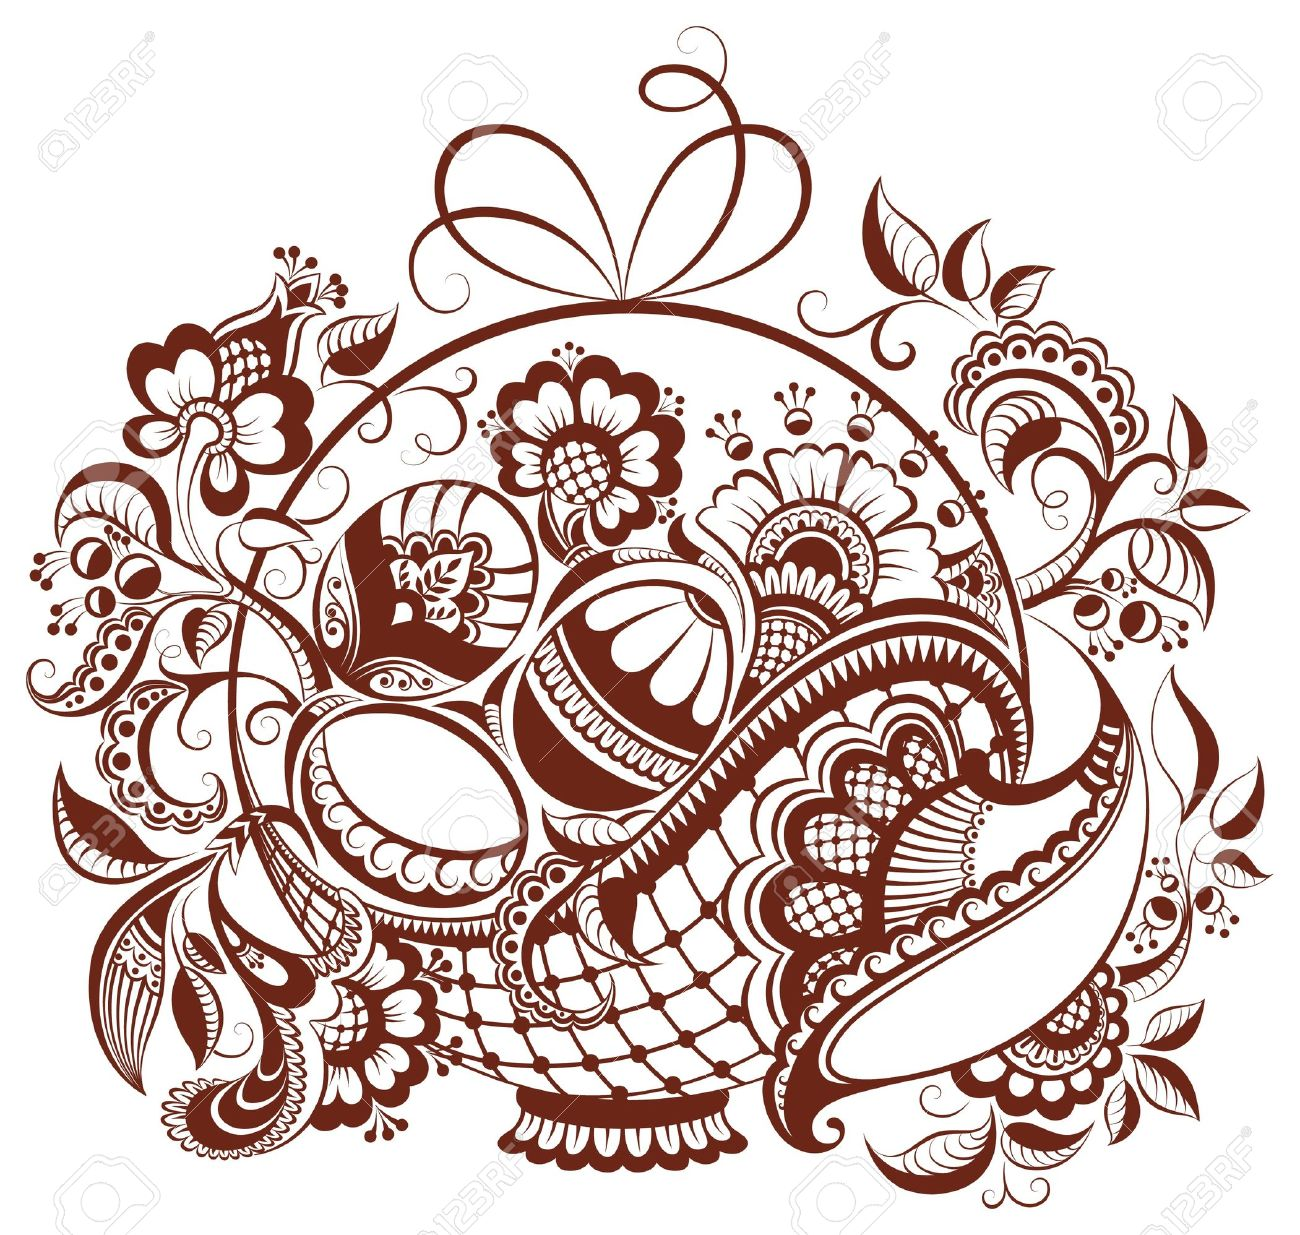 Easter floral henna design. The vector paisley abstract background isolated on white - 12492224